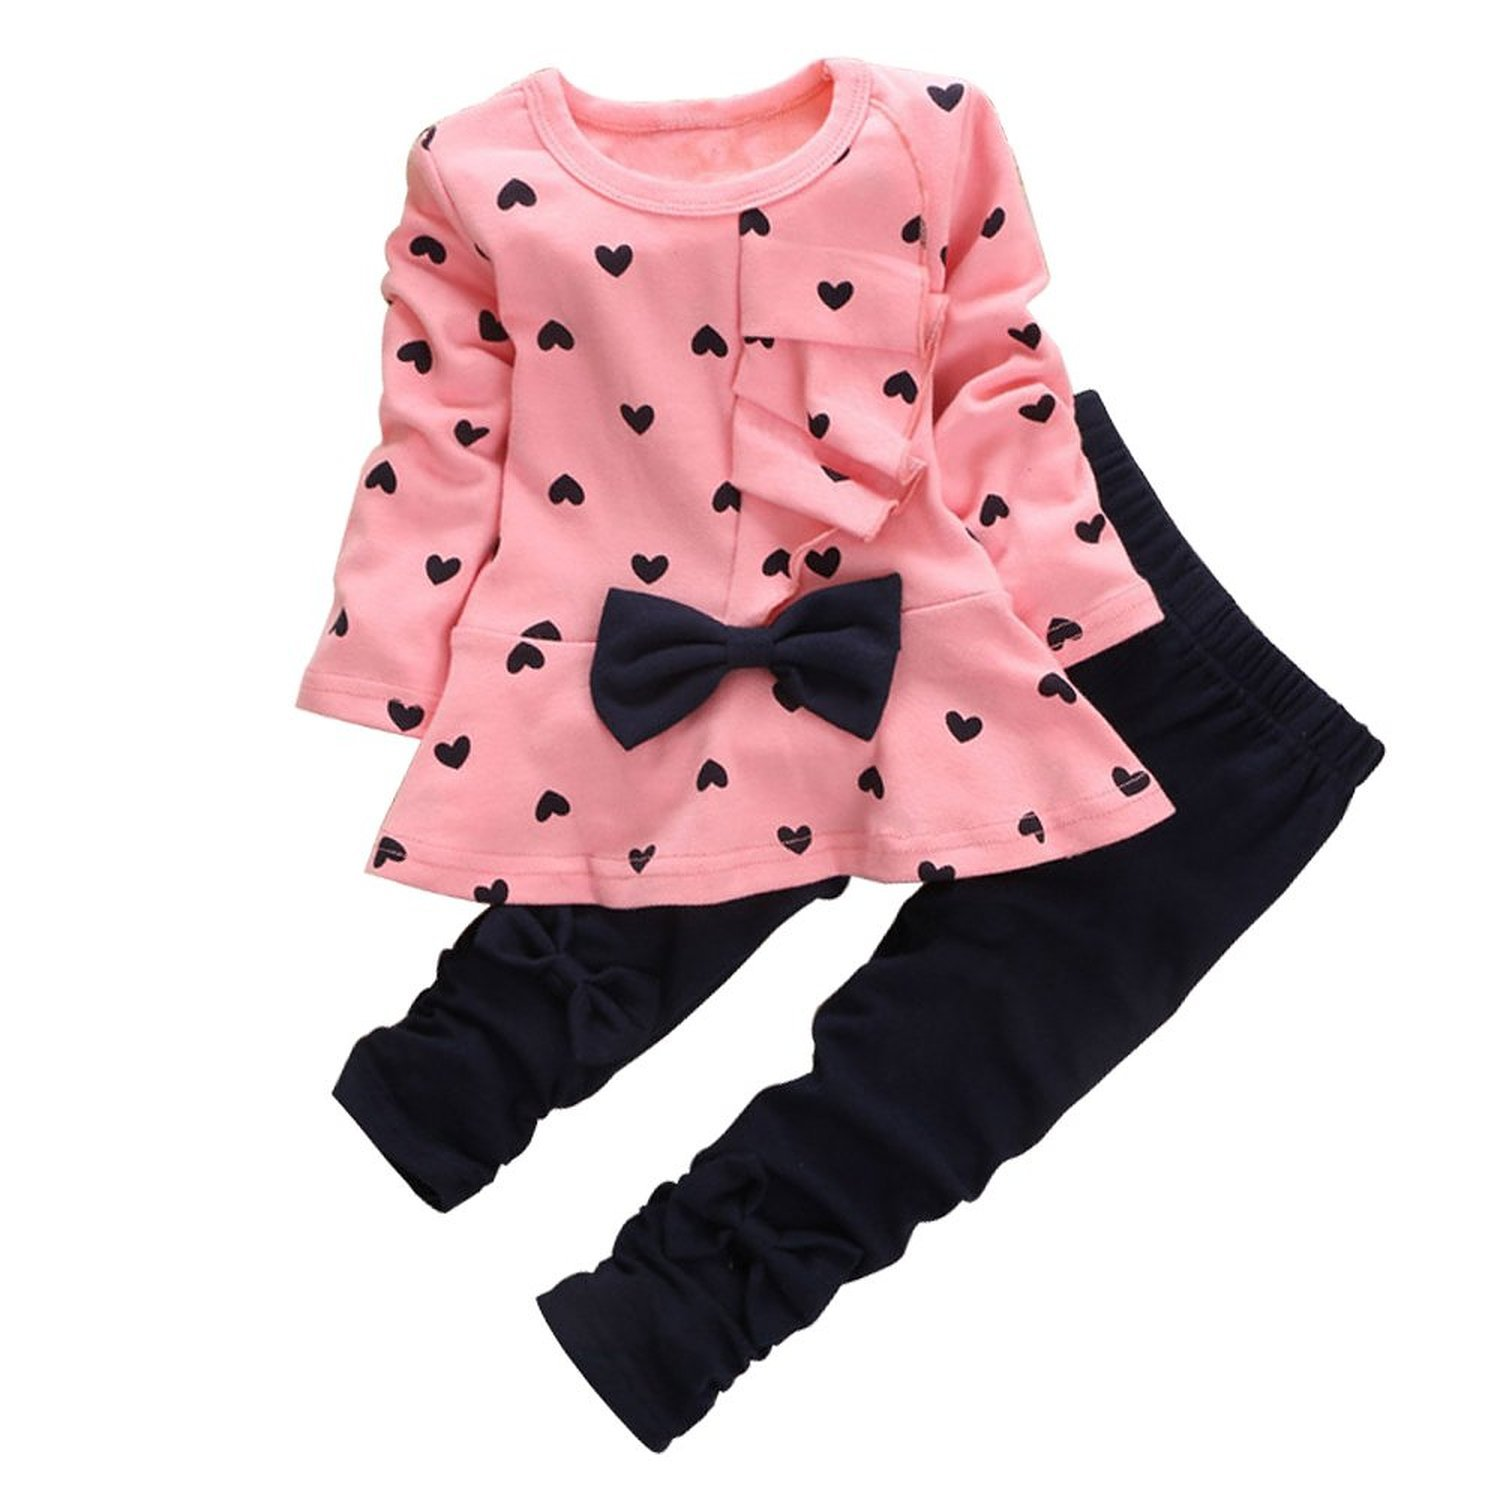 Zeagoo Cute Baby Girls 2 Piece Sets Outfits Sweetheart Dot Tops and Pants Set